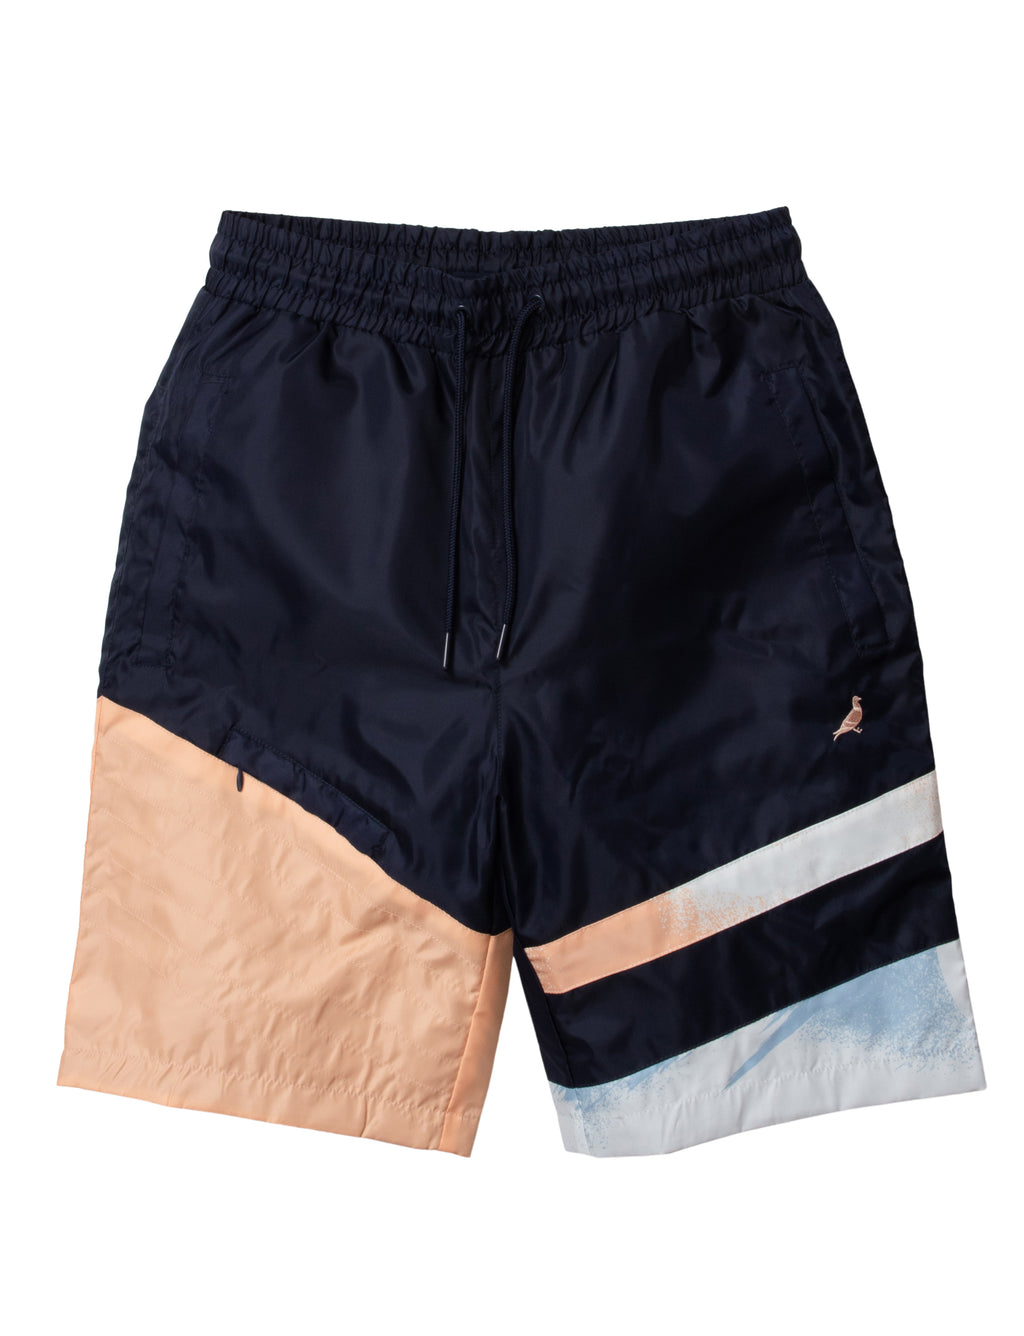 Acrylic Nylon Shorts - Shorts | Staple Pigeon